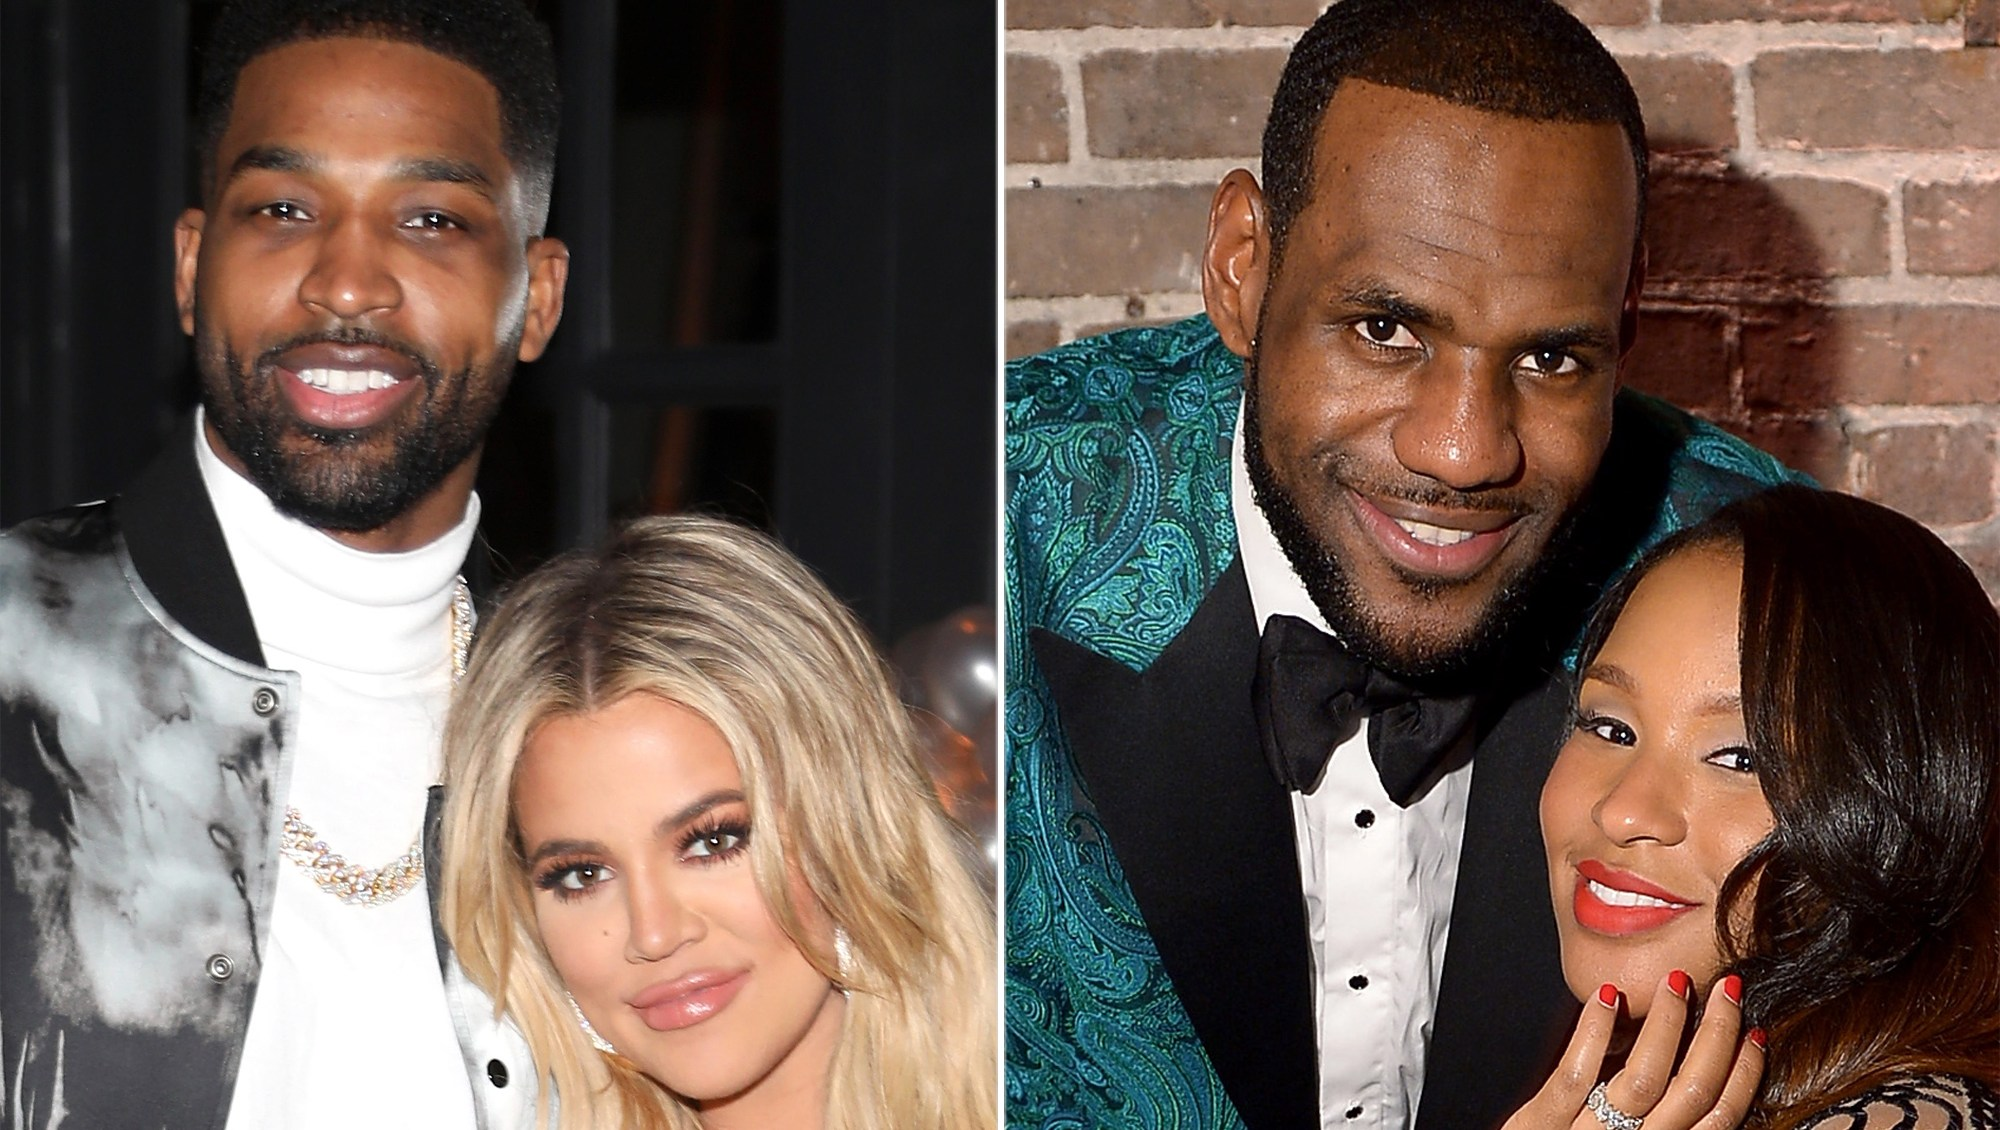 Khloe-Kardashian-and-Tristan-Thompson-Double-Date-With-LeBron-James-and-Savannah-Brinson